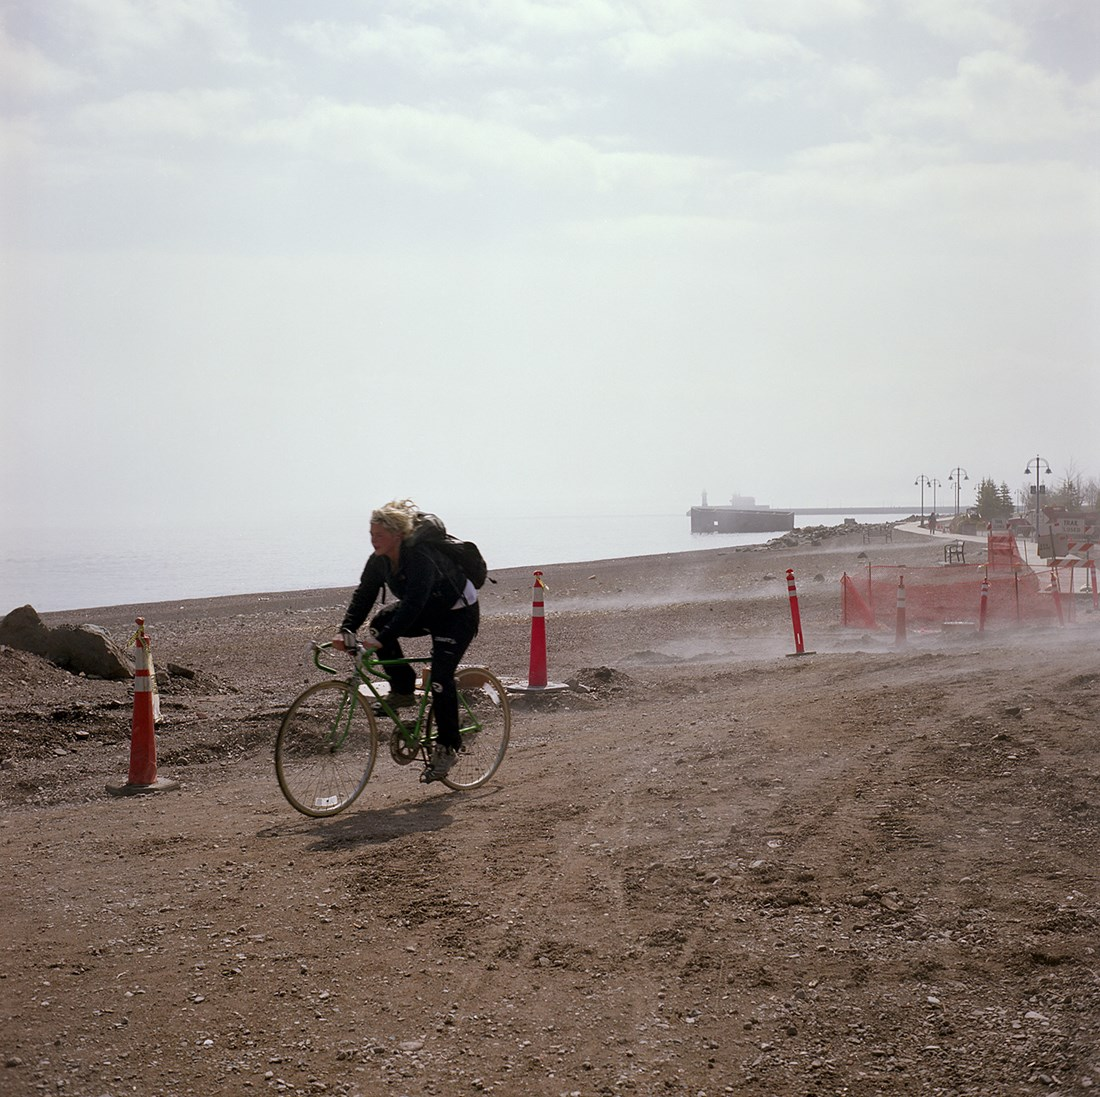 Bicyclist On The Lakewalk, Duluth, Minnesota, April 2010